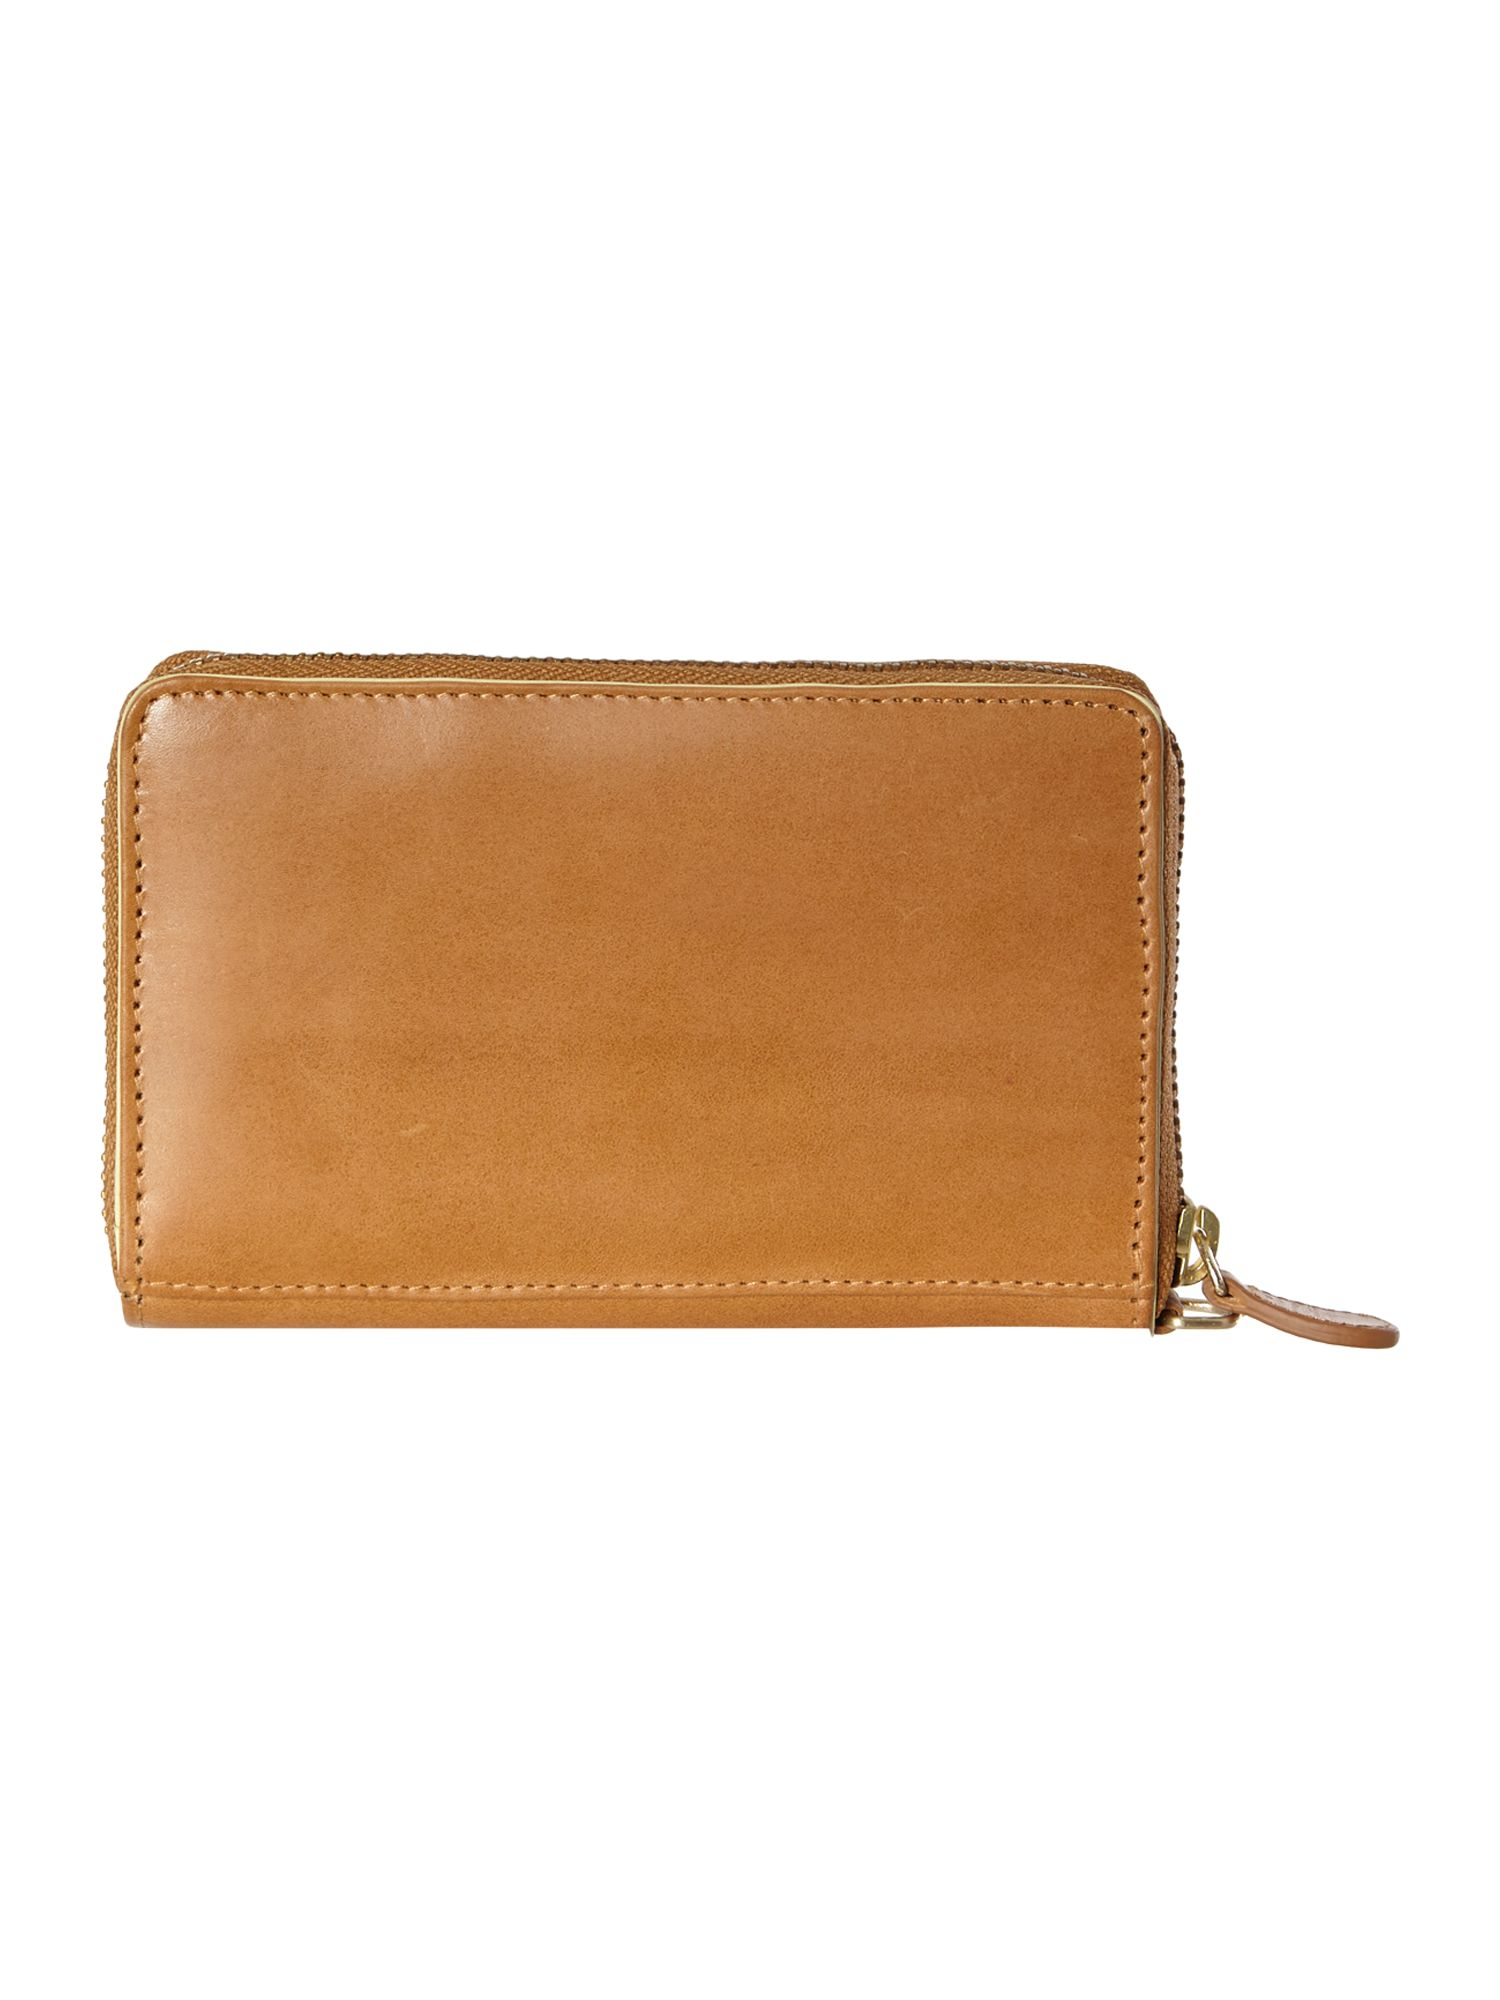 Blair tan medium zip wristlet